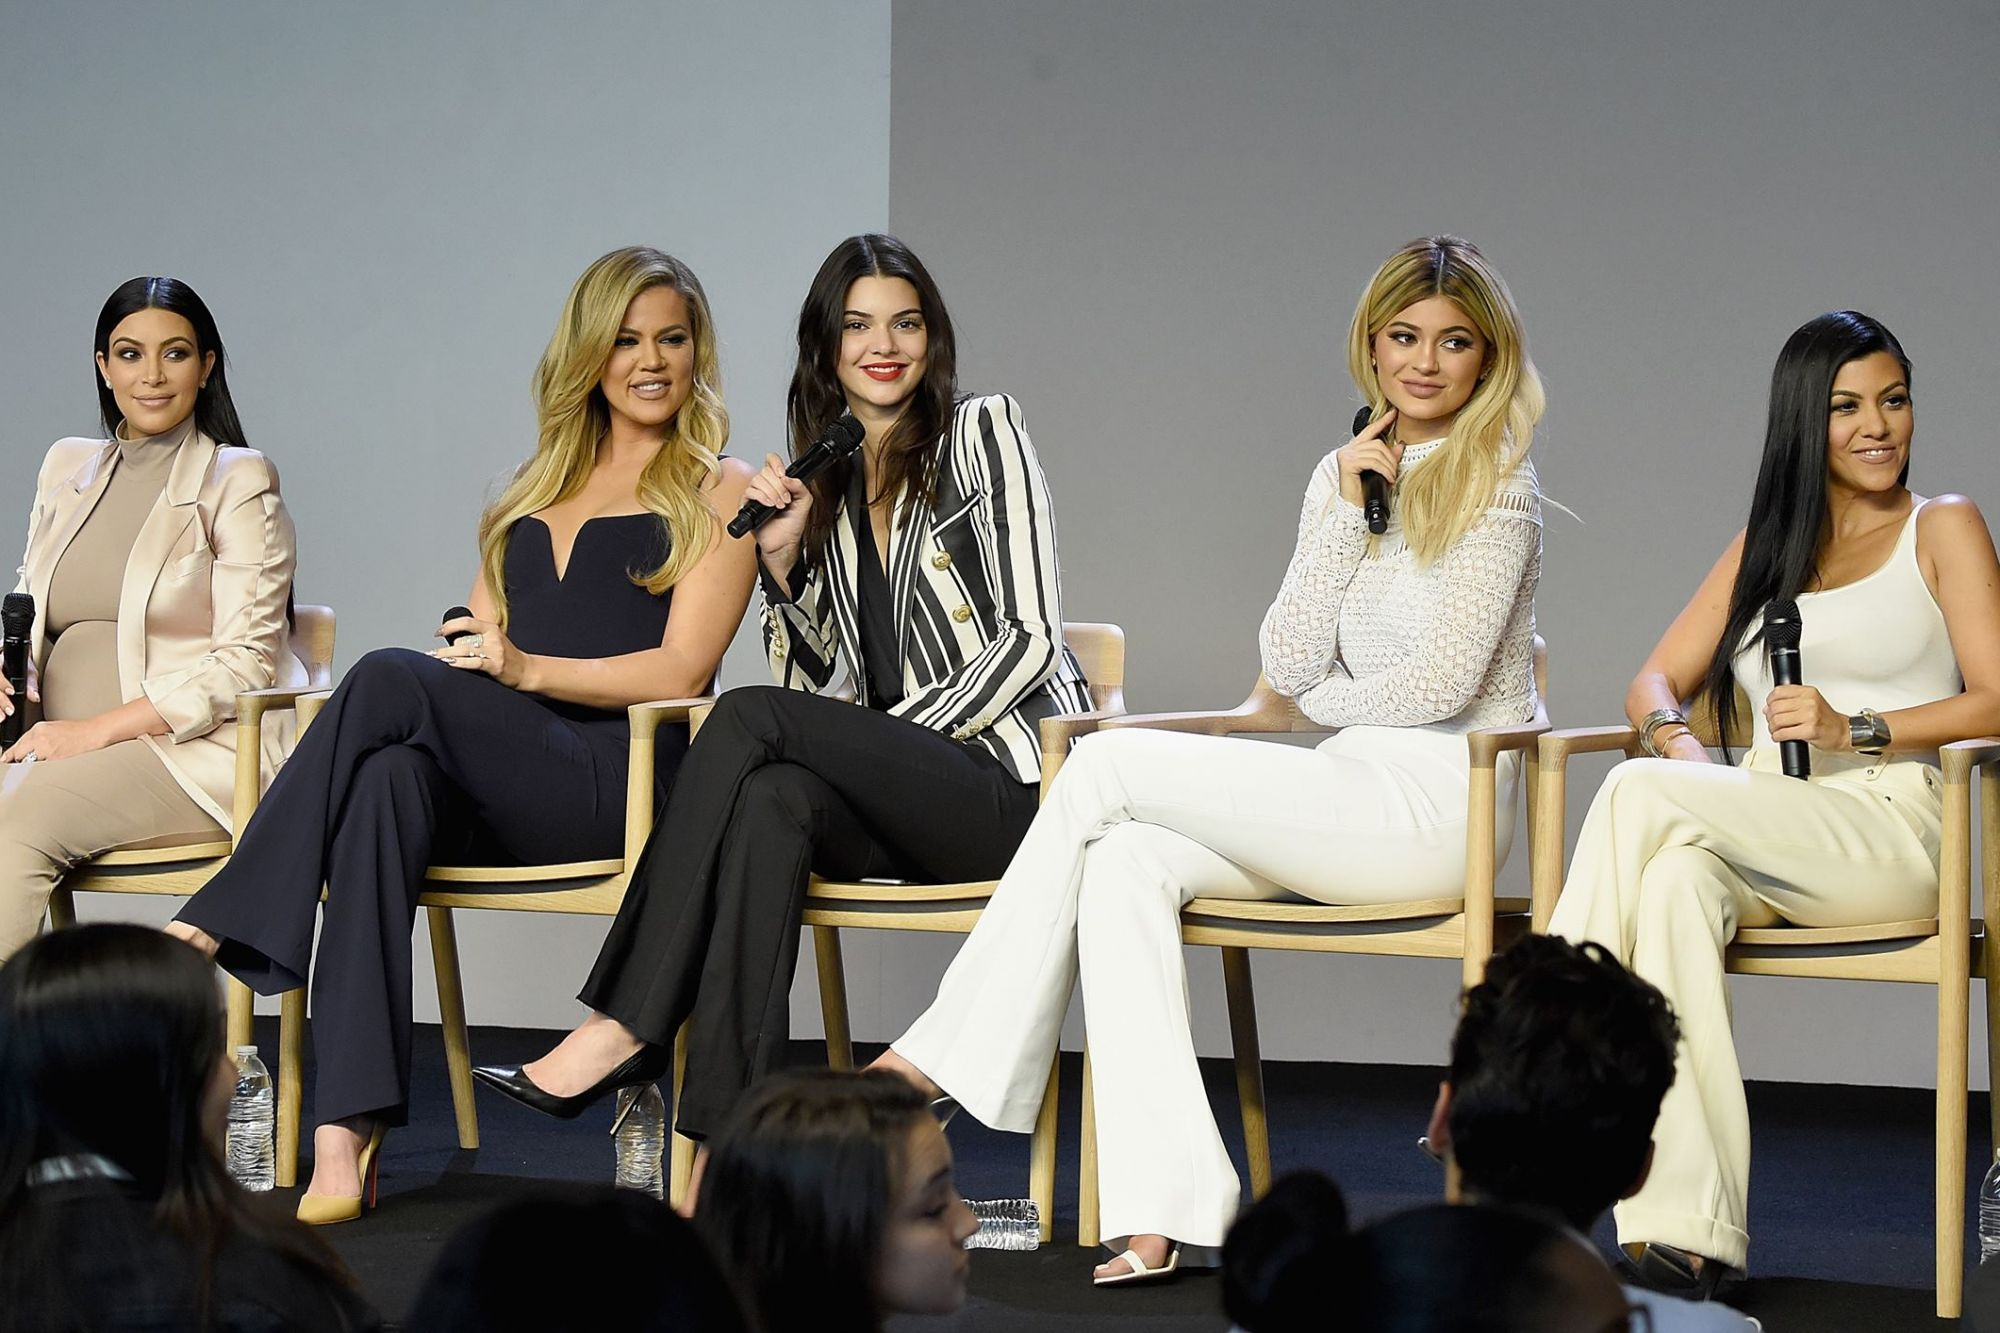 Valuable Lessons Aspiring Women Entrepreneurs Can Learn by Keeping up With the Kardashians